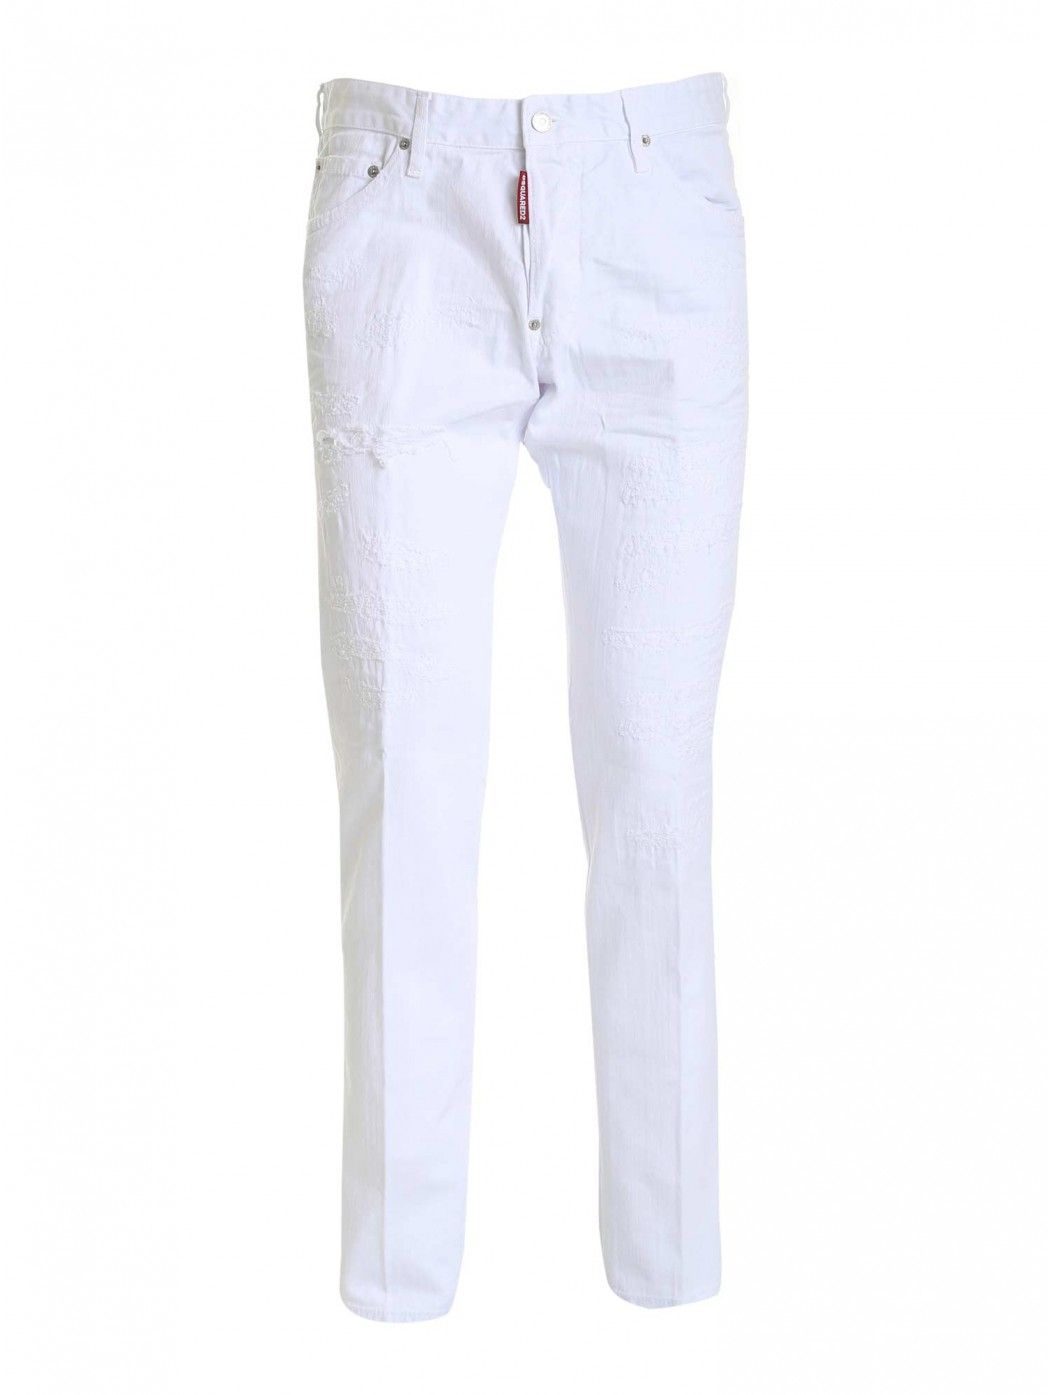 JEANS COOL GUY BIANCO...